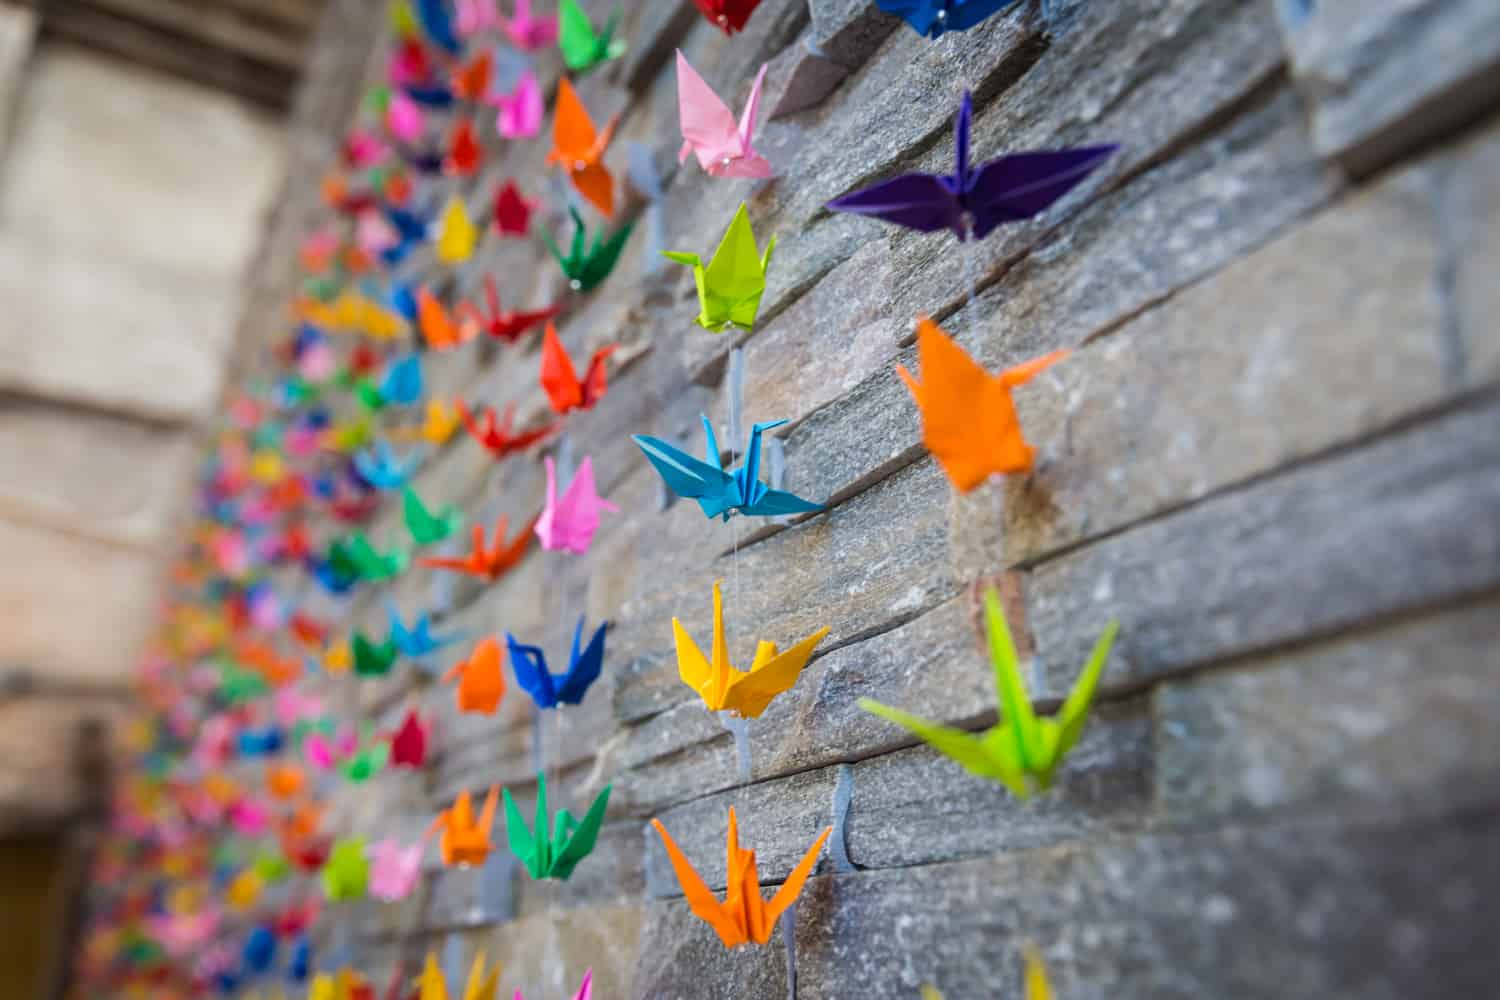 Stone wall with multicolored origami cranes hanging over the wall